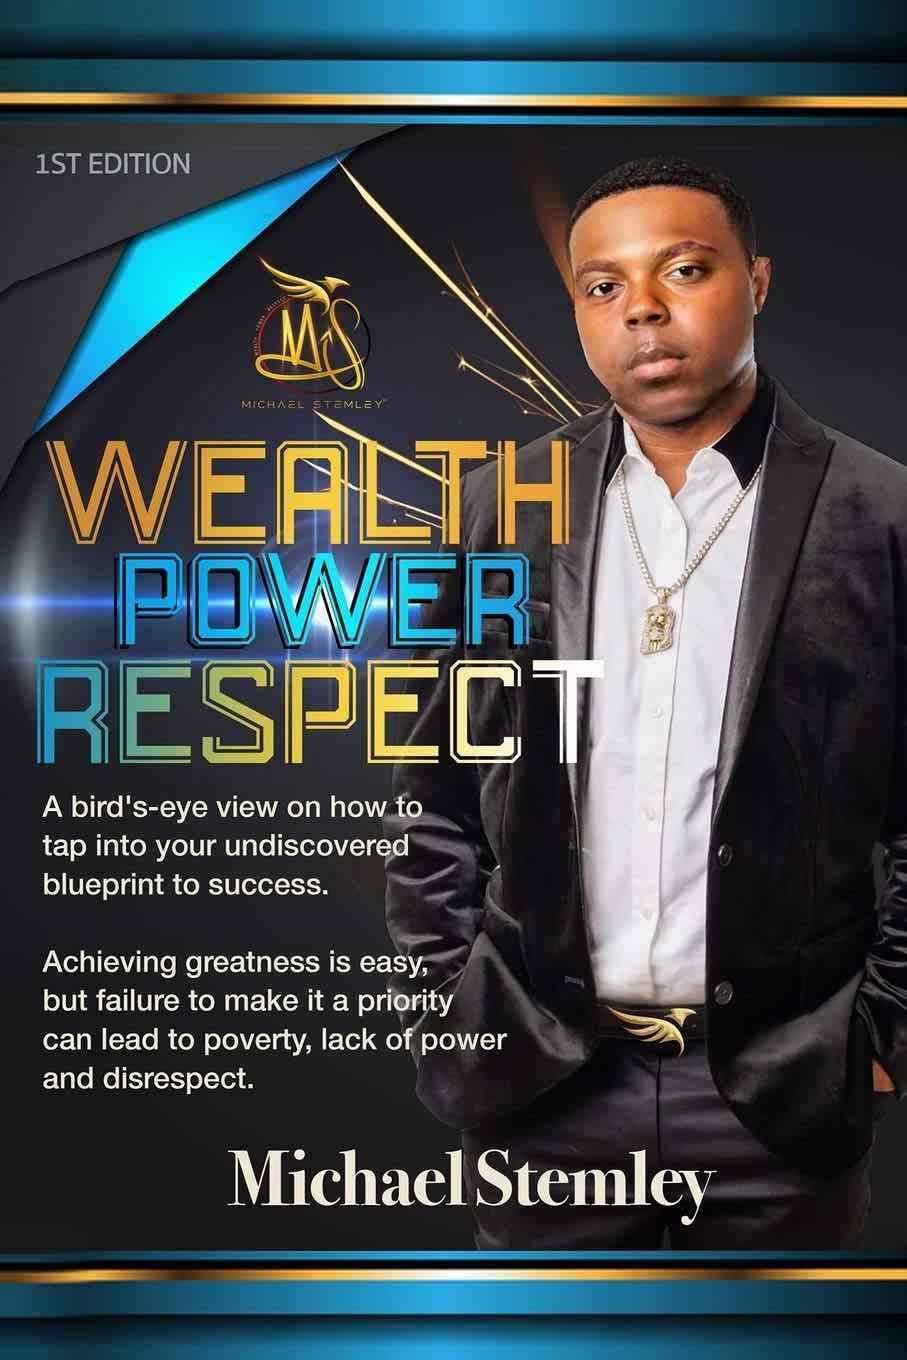 A well-known name in the music industry, Michael Stemley wrote and published a self-help book for wealth creation. Here's our interview with Stemley.